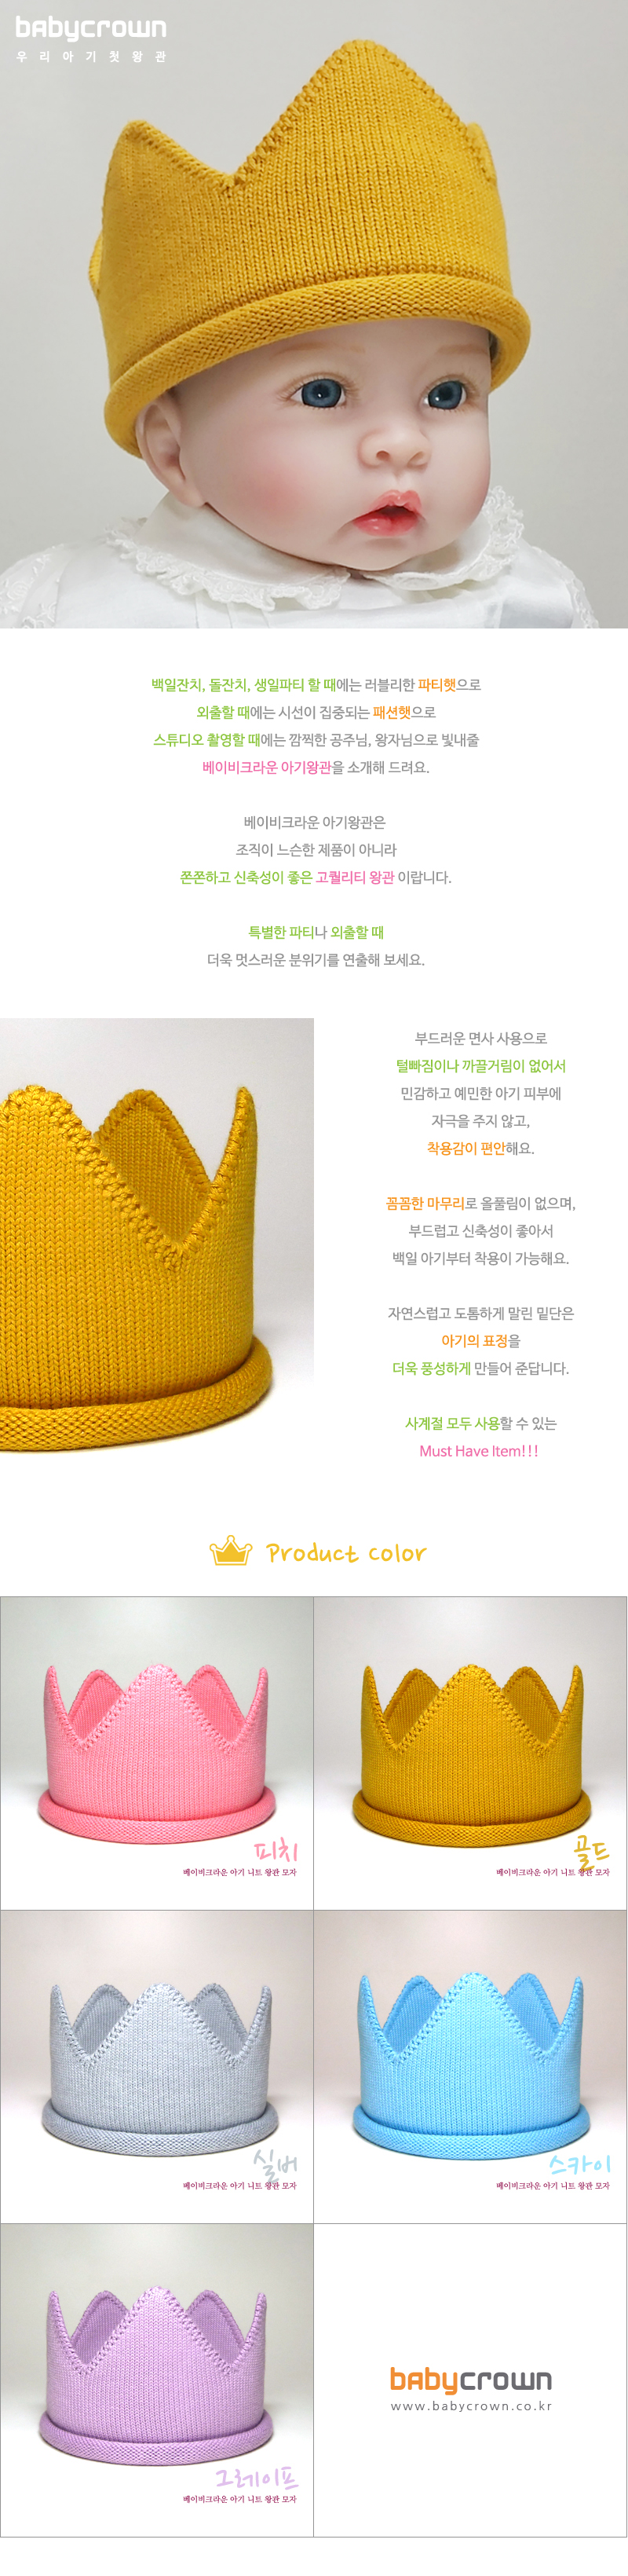 [ Babycrown ] [Baby Crown] baby knit crown cutie (gold)